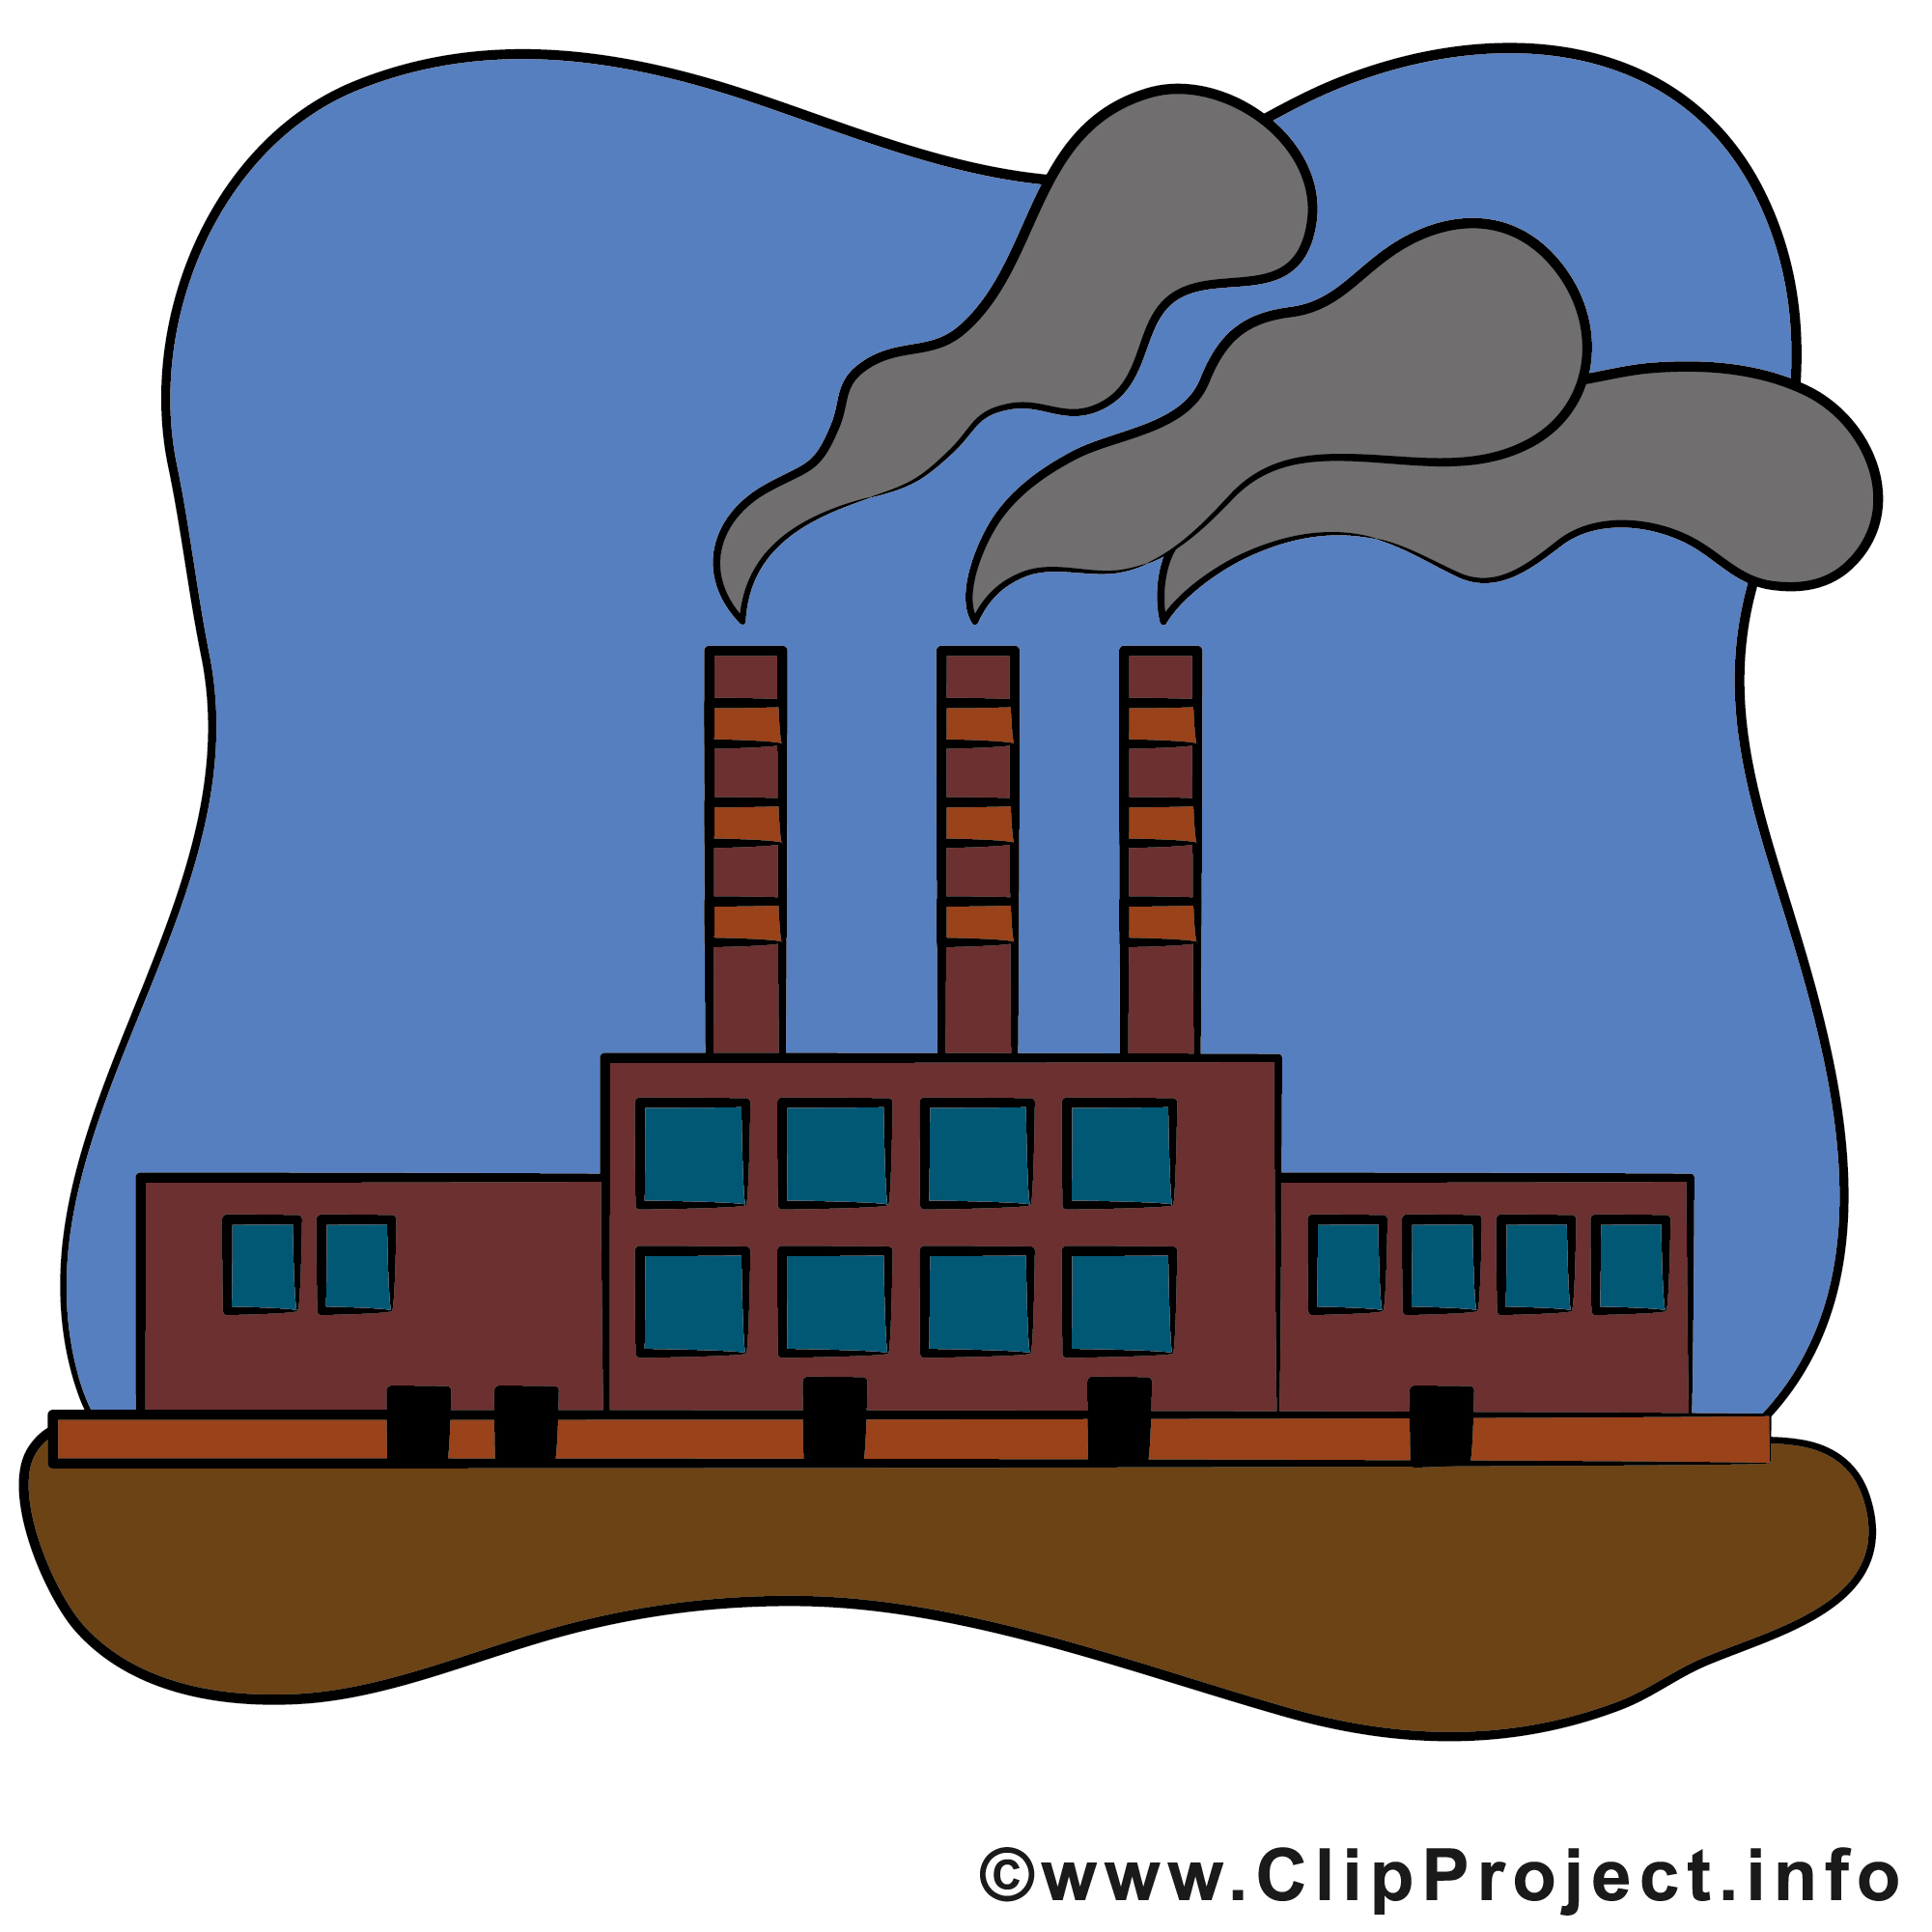 Clipart usine 7 » Clipart Station.